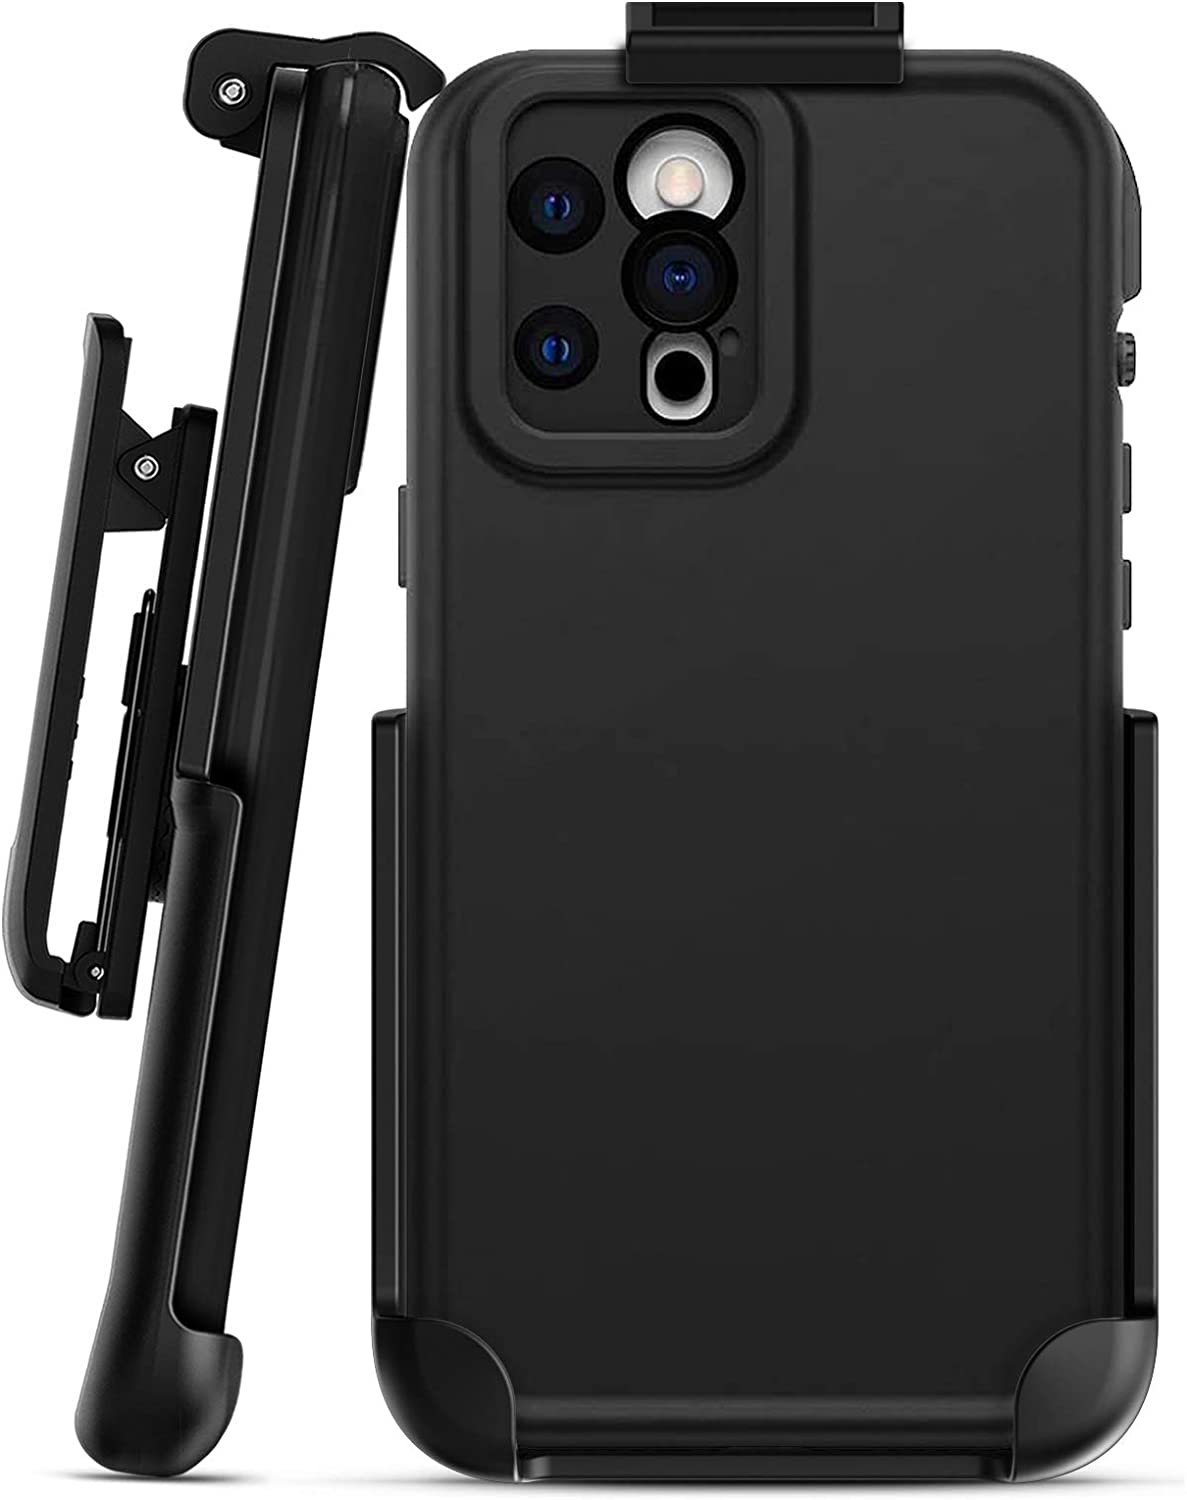 Encased Belt Clip Compatible with Lifeproof Fre - iPhone 12 Pro Max (Holster Only - Case not Included)